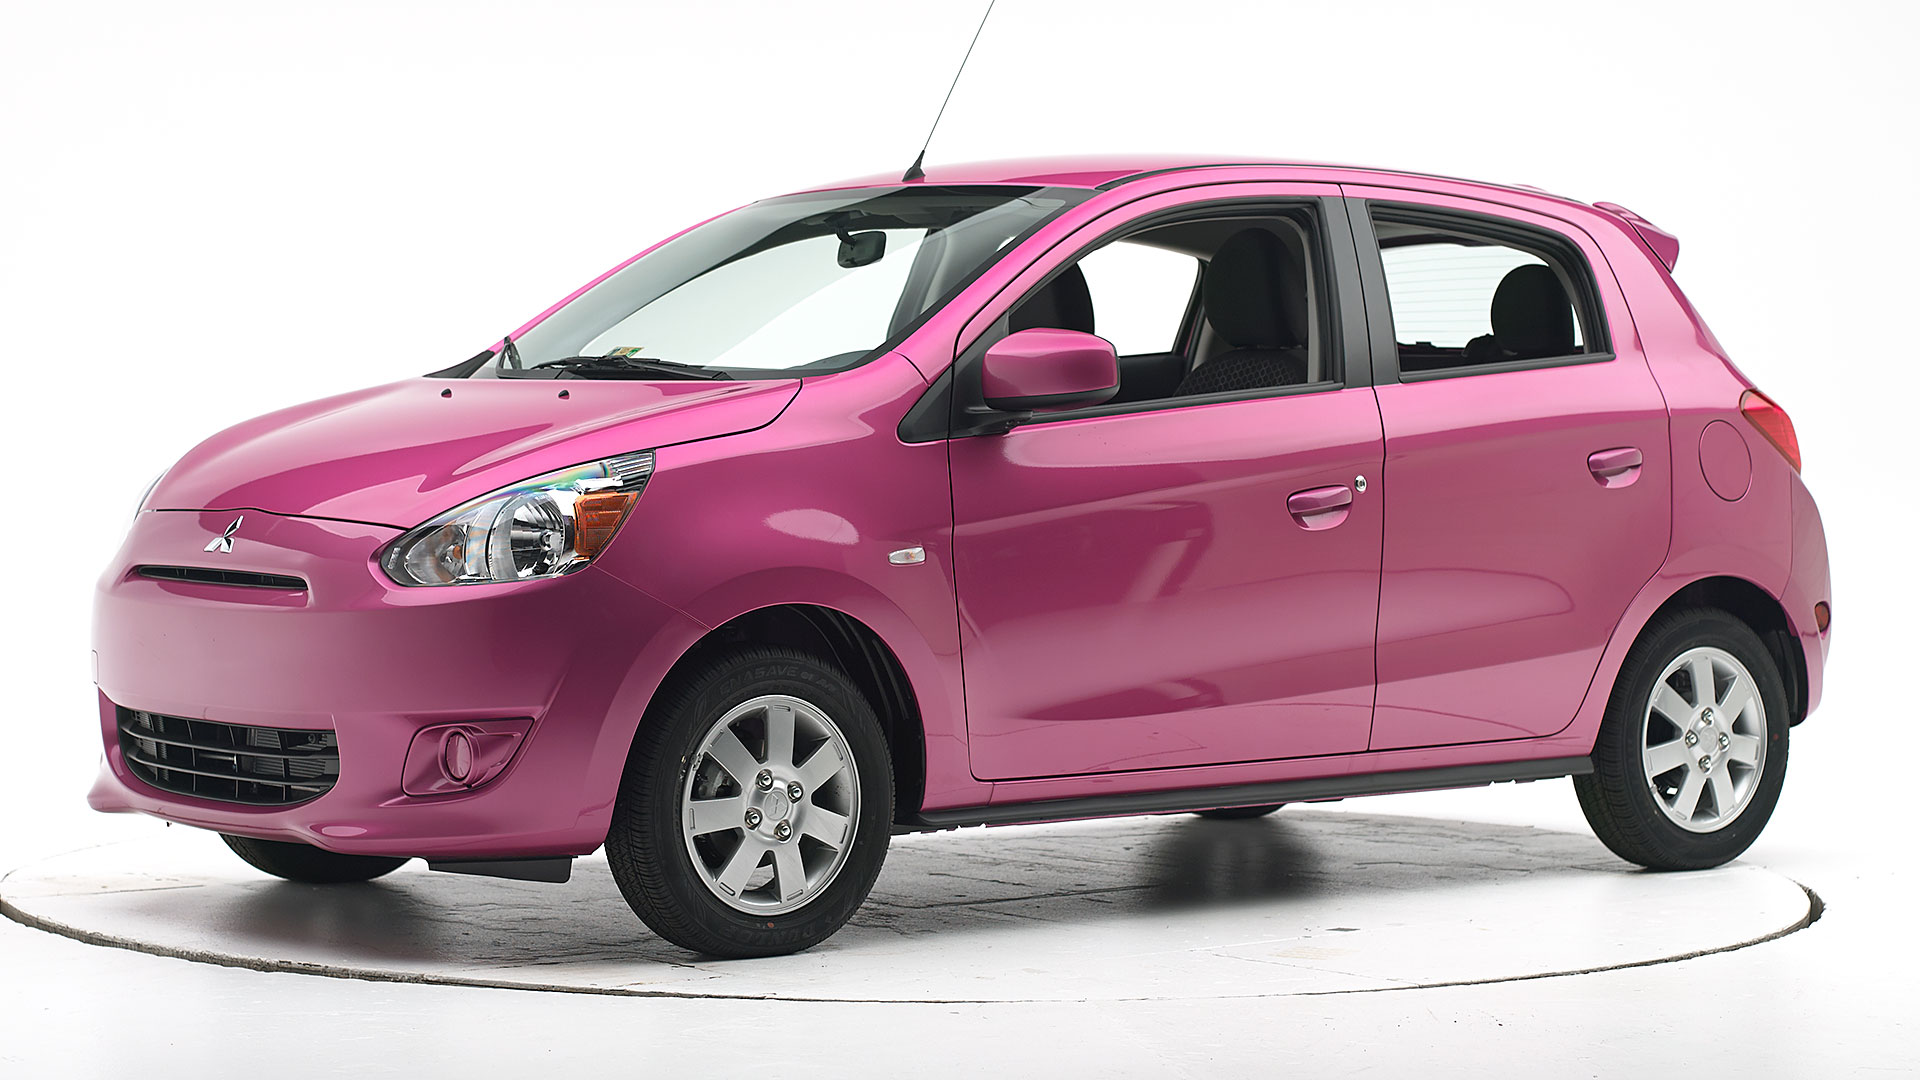 2015 Mitsubishi Mirage 4-door hatchback